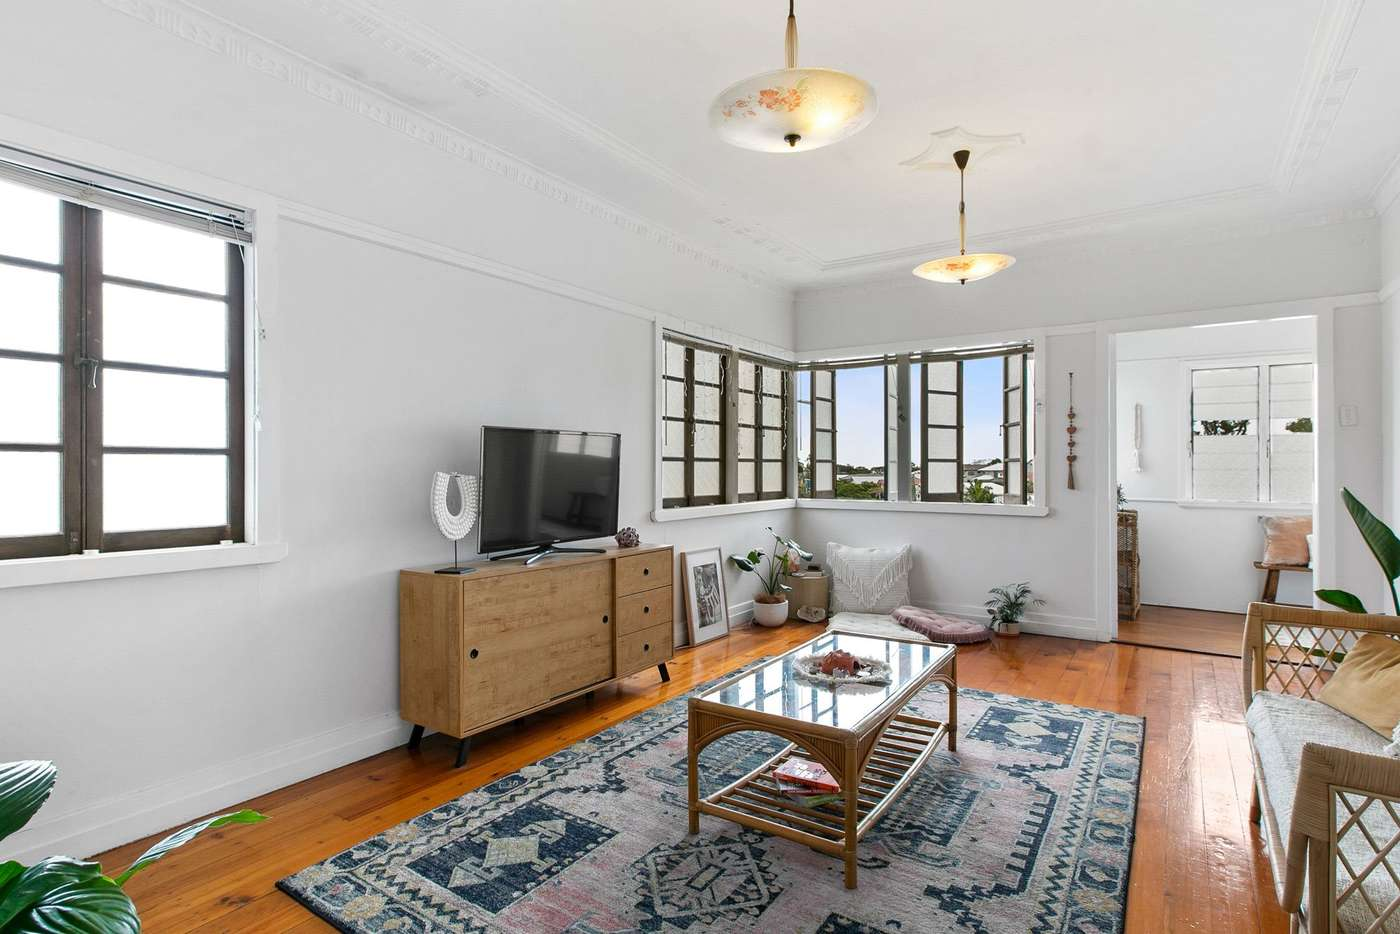 Fifth view of Homely house listing, 29 Oxley Drive, Holland Park QLD 4121